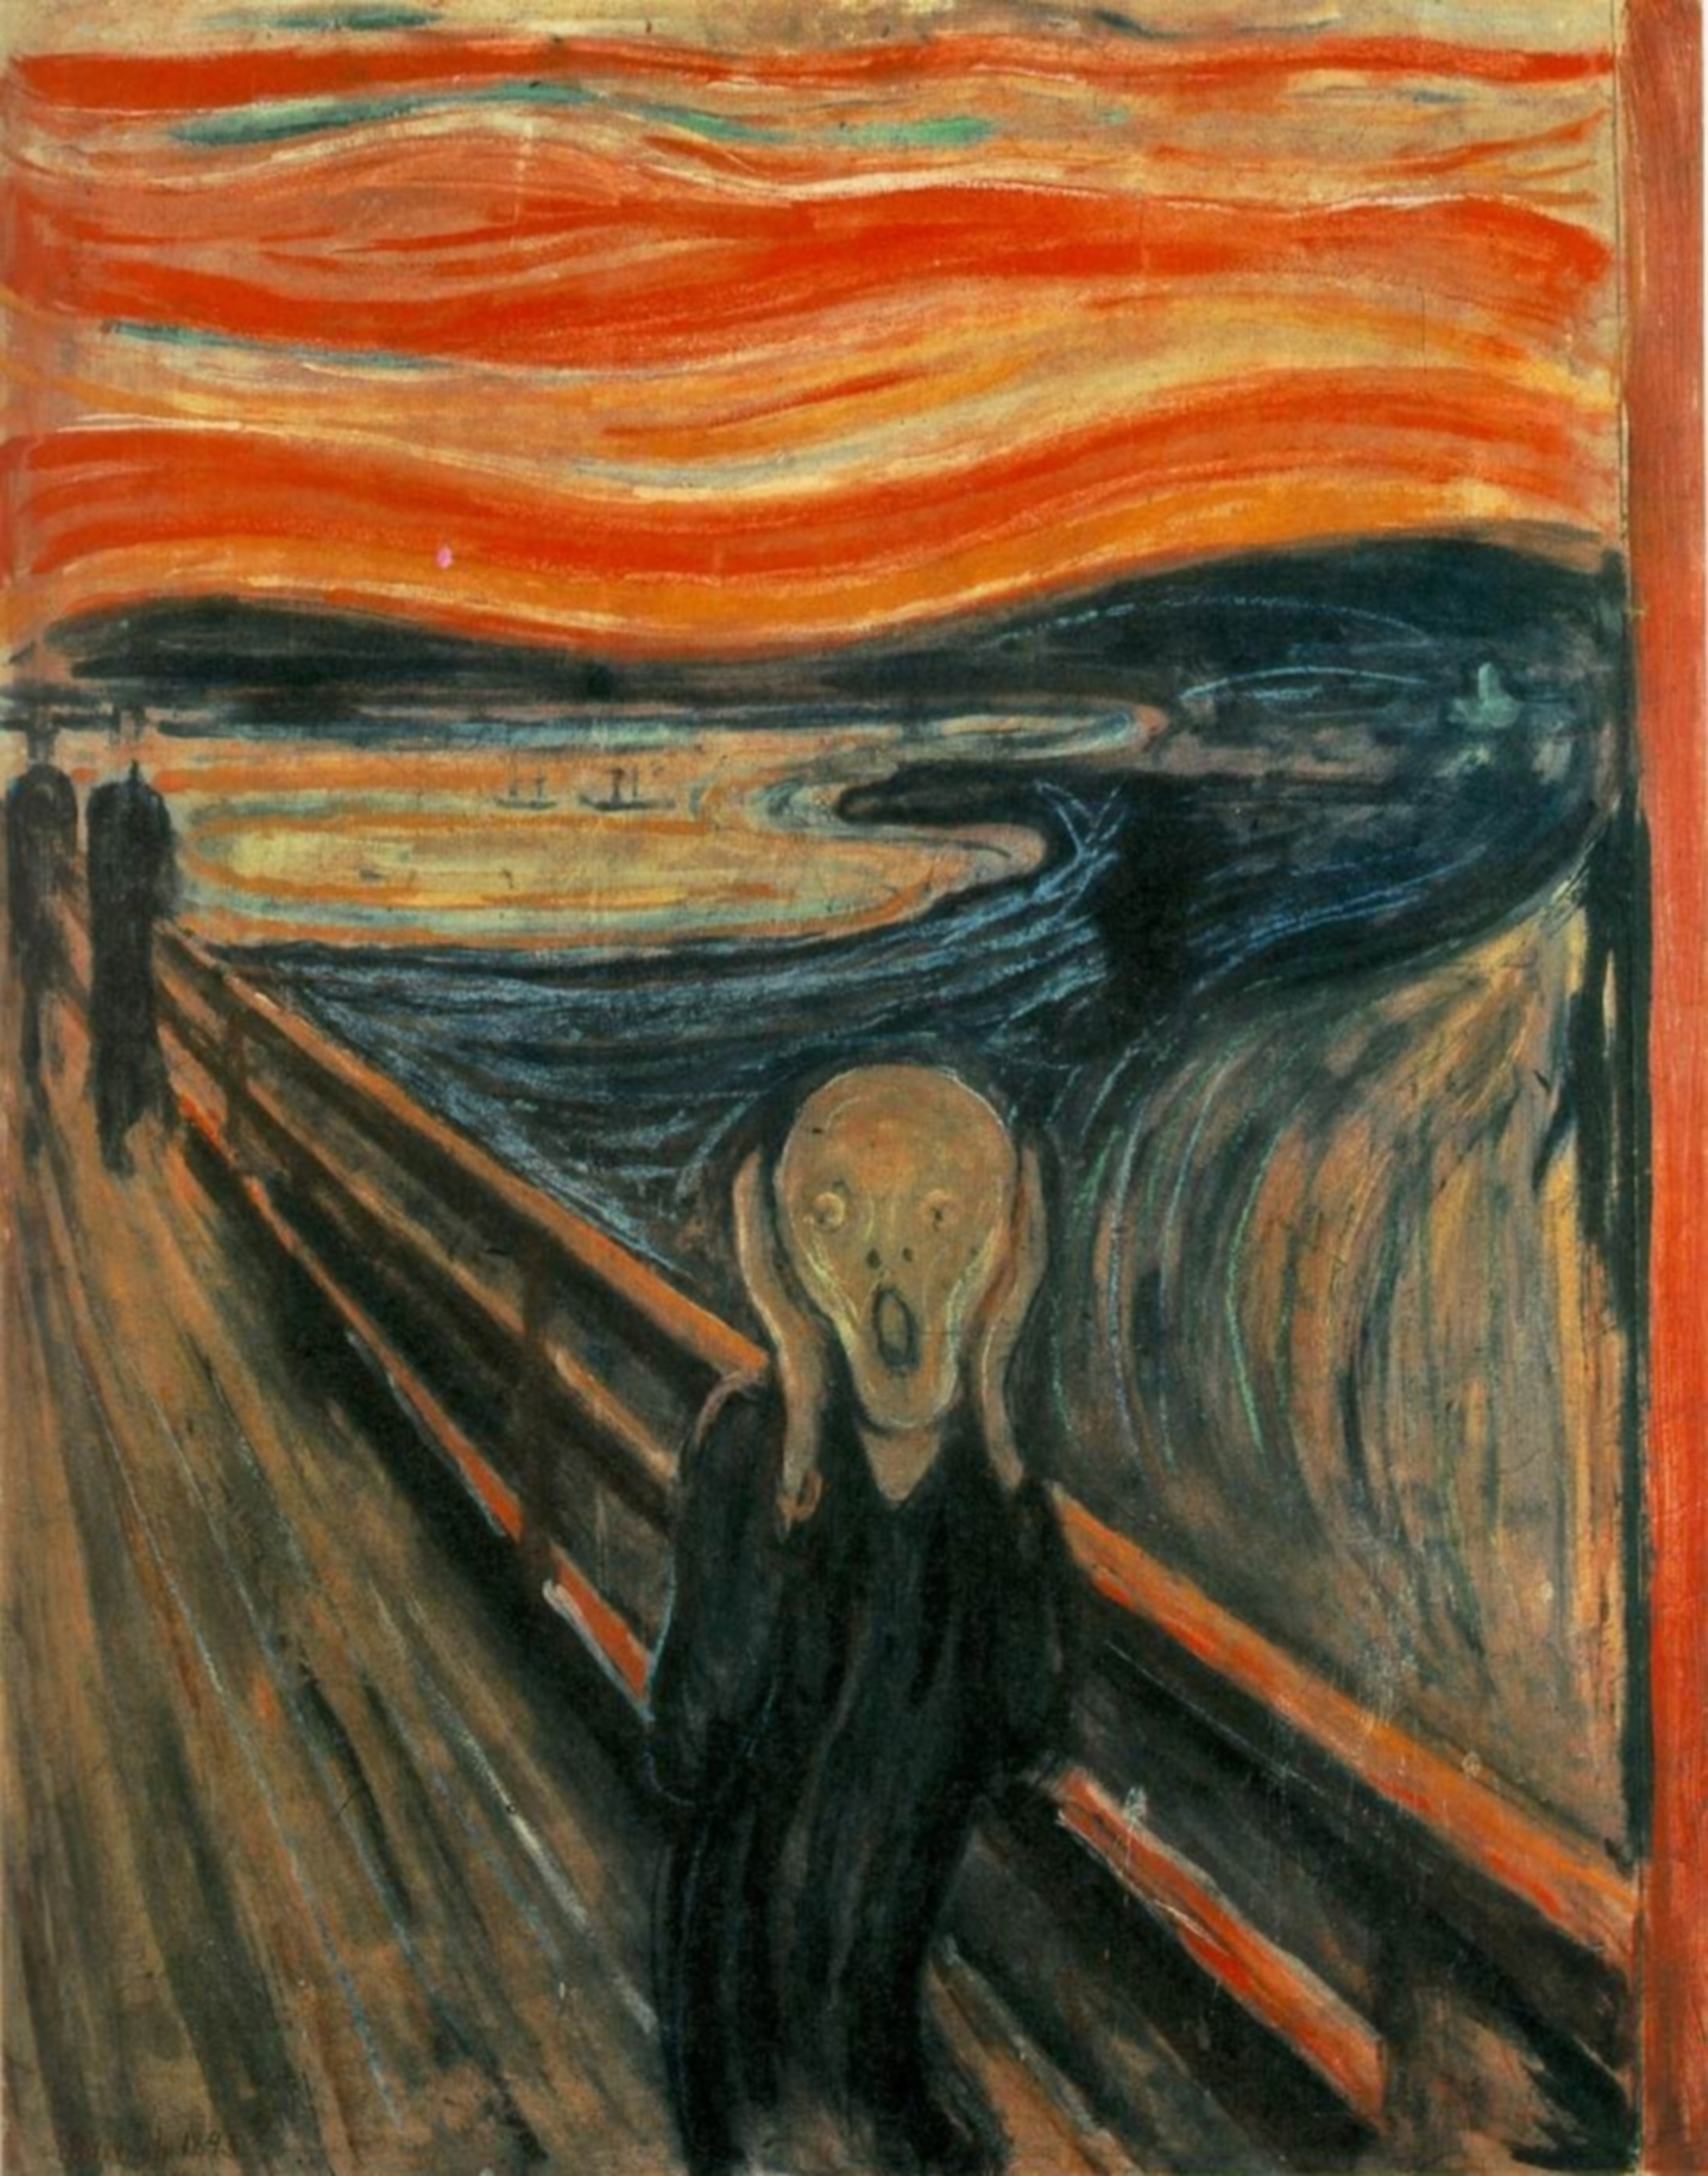 Painter: Edvard Munch